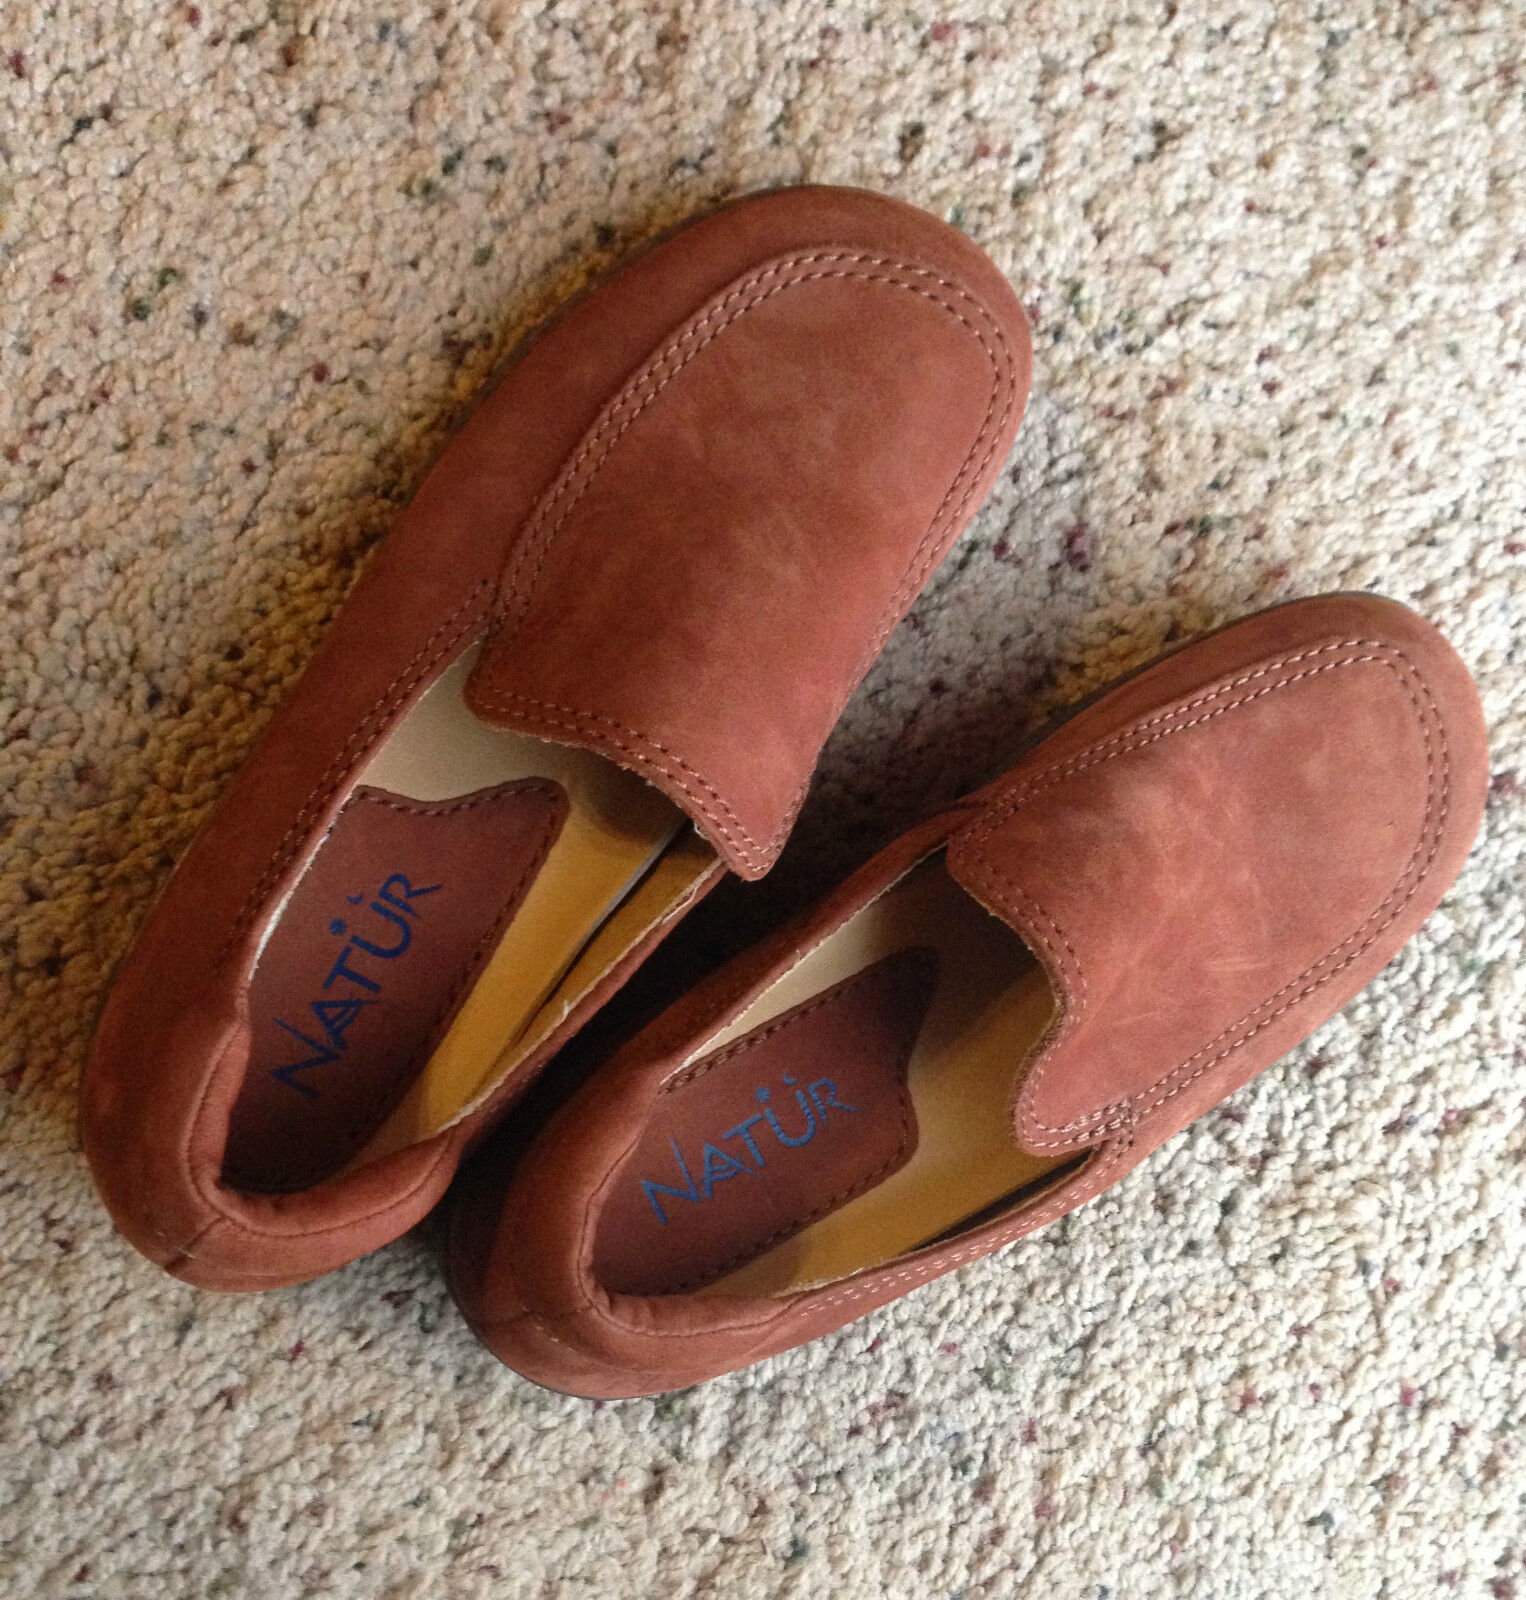 Natur Womens SHOES Sz 6M Brown Rust color SUEDE Leather NEW soft CLASSY